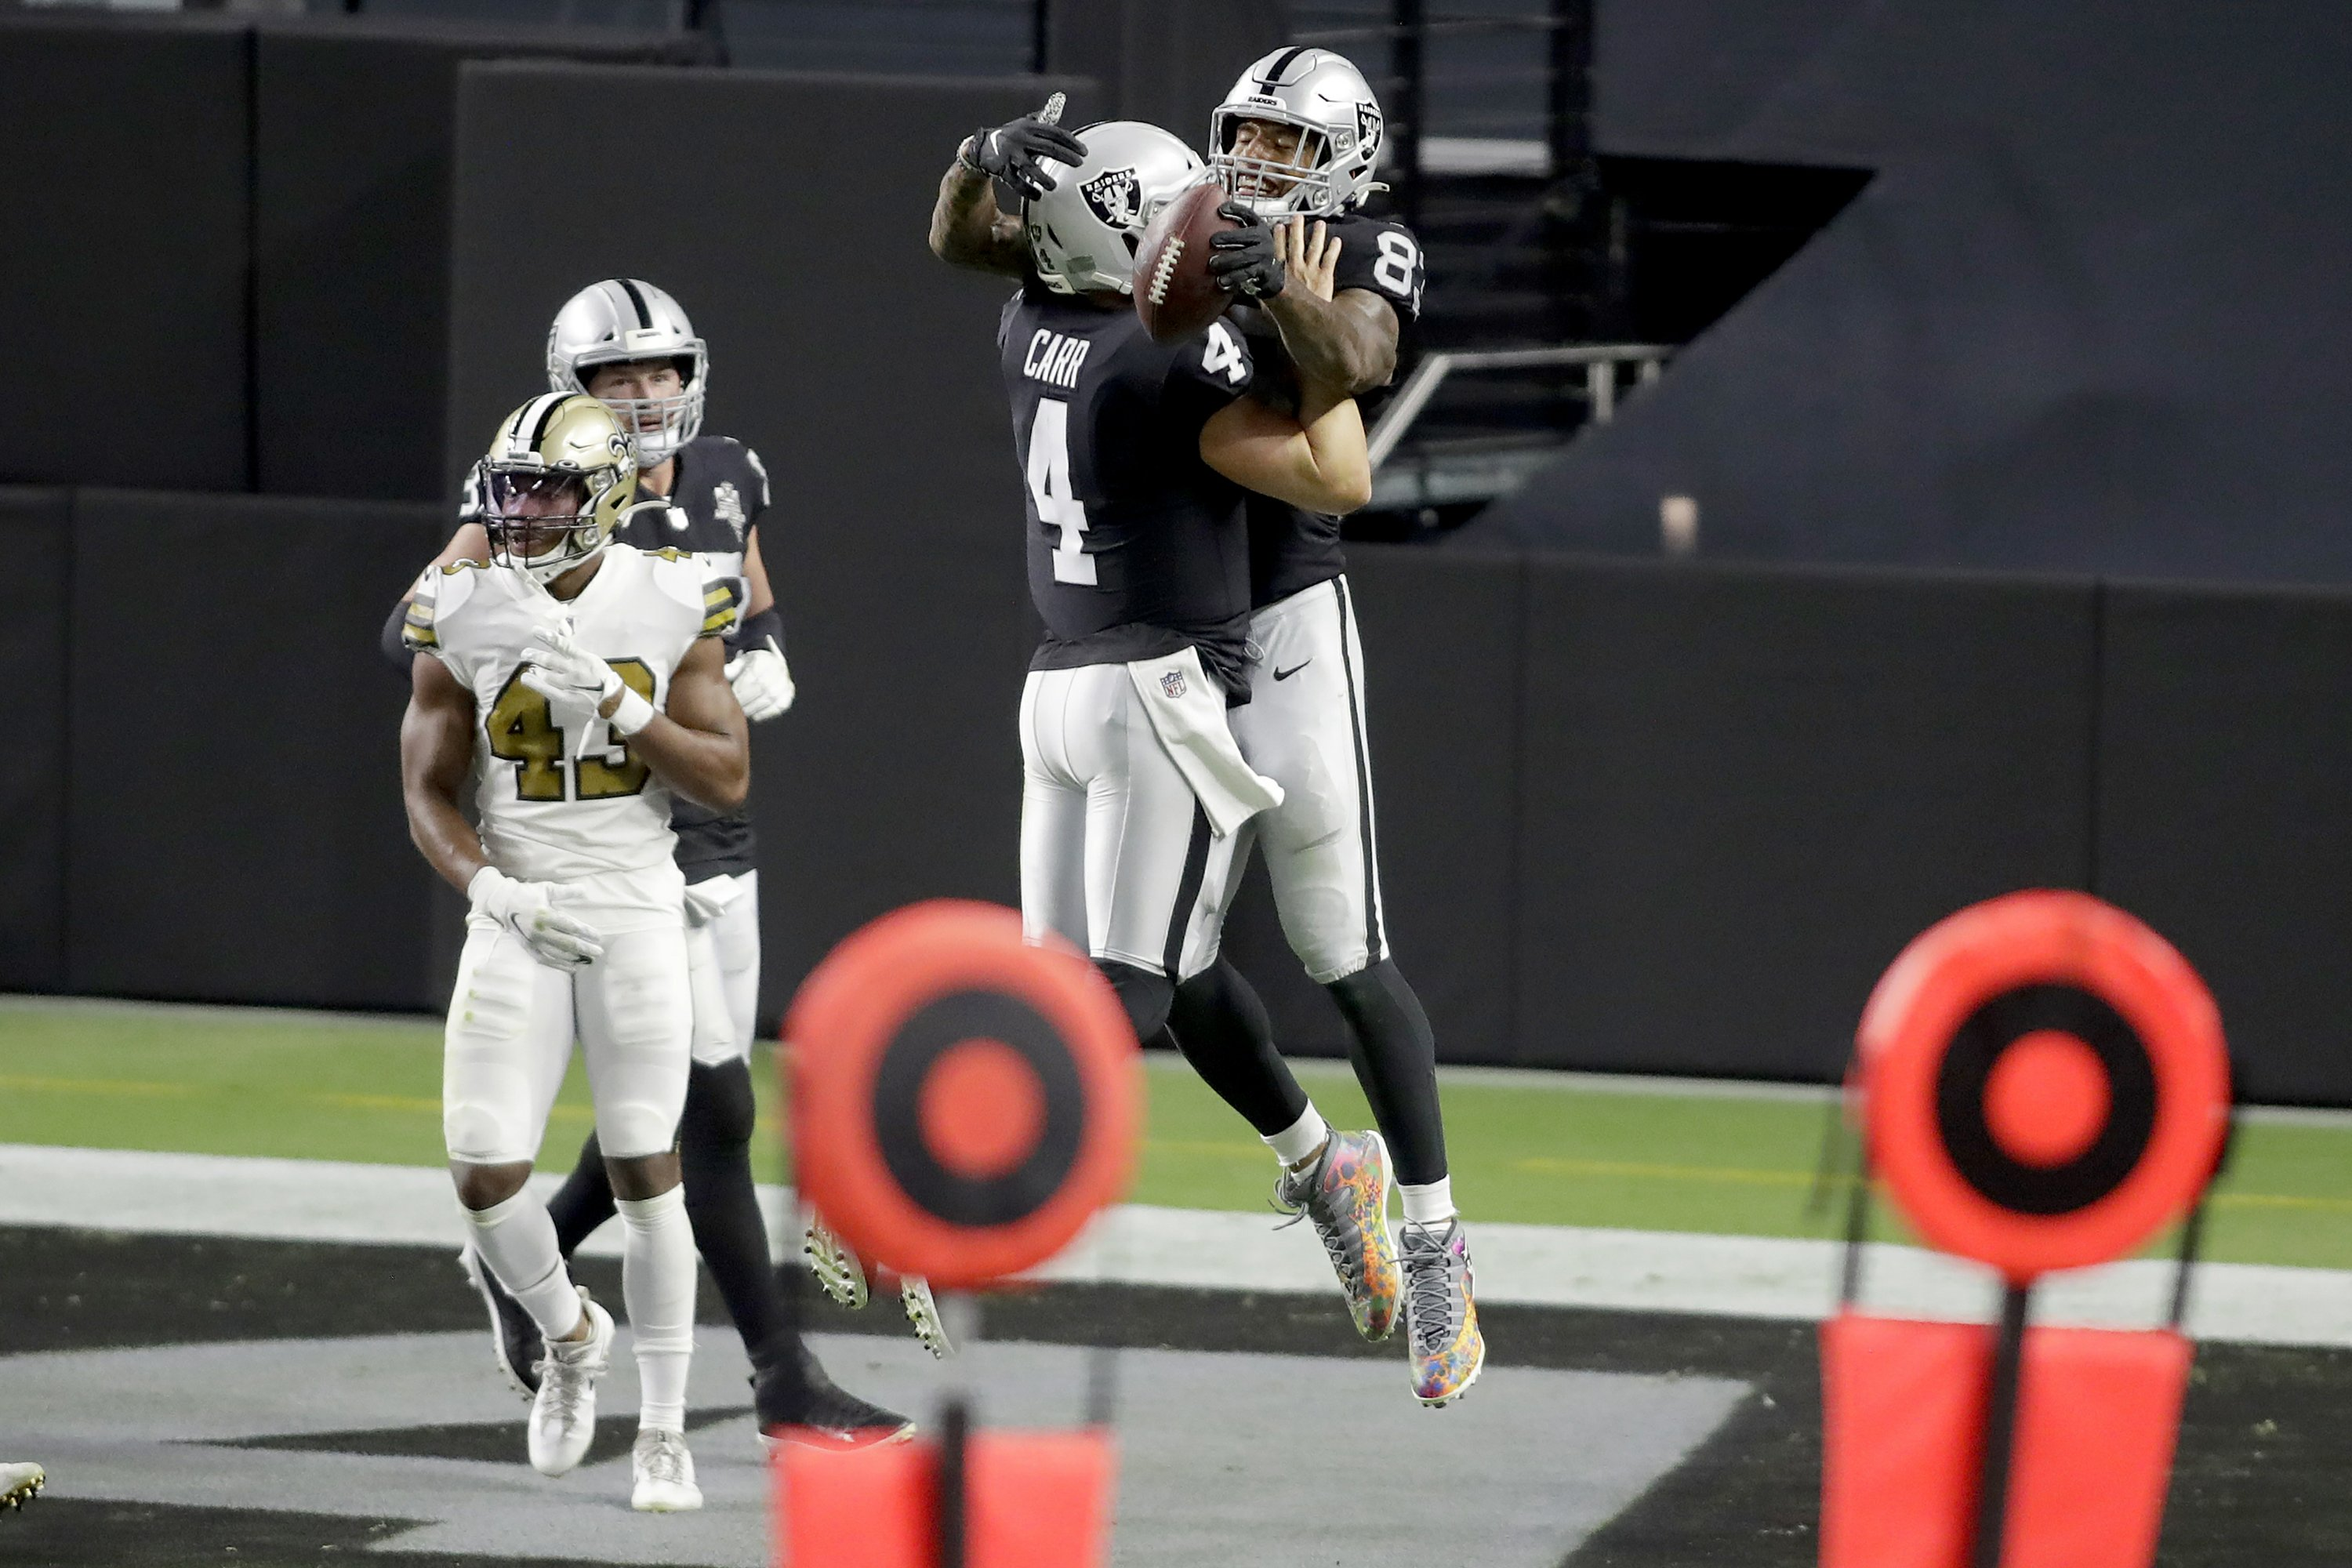 Raiders open Las Vegas stadium with 34-24 win vs Saints